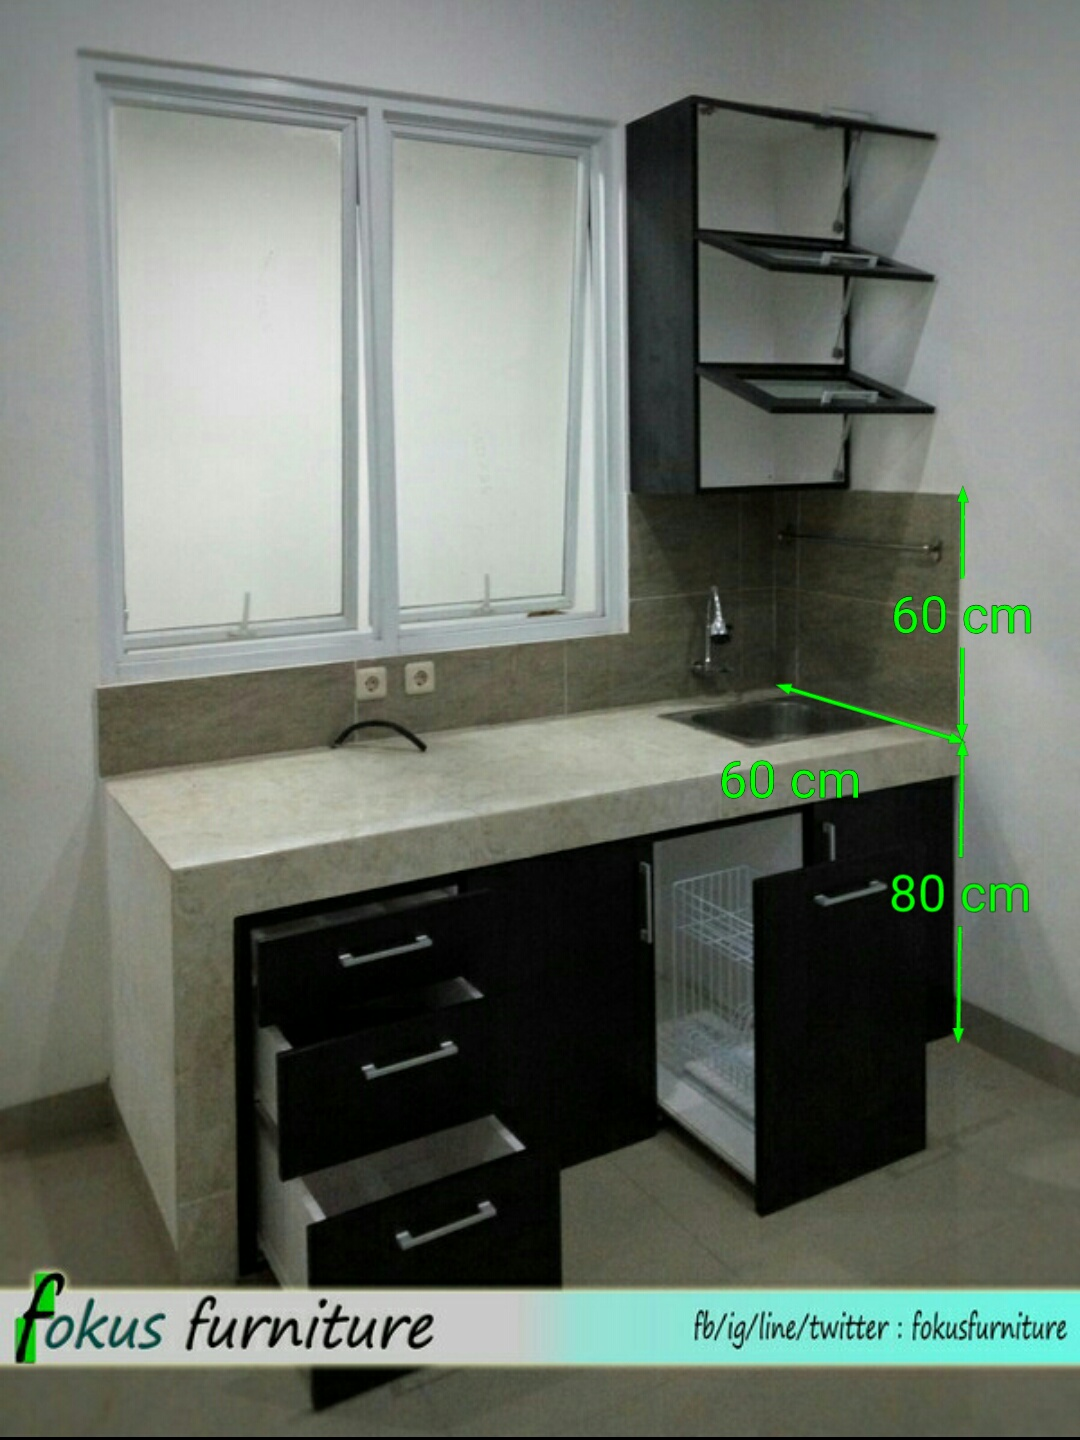 Ukuran kitchen set furniture kitchen set minimalis for Katalog kitchen set